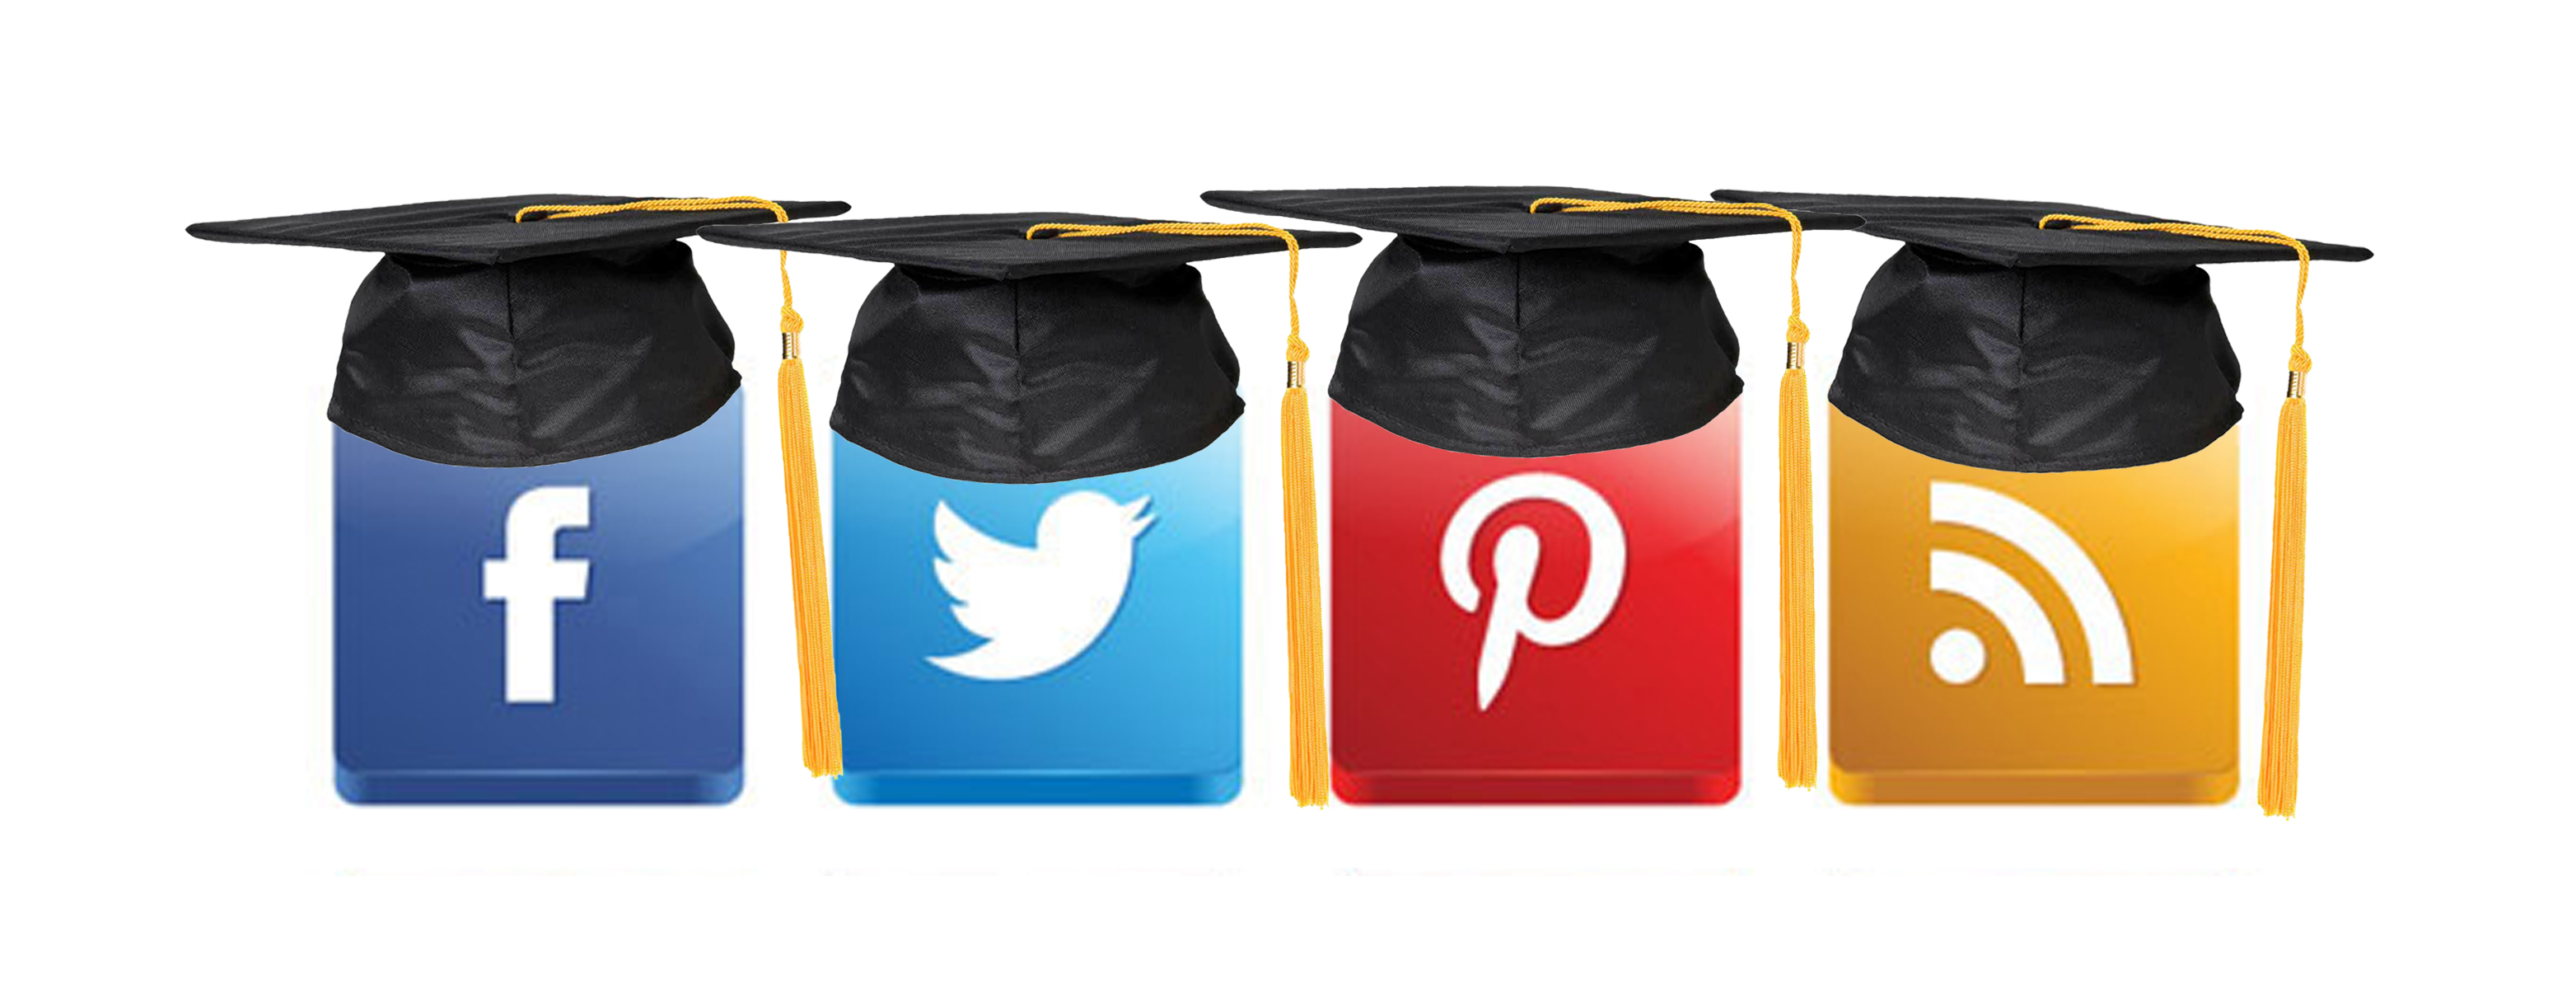 Logos in mortar boards: Facebook, Twitter, Pinterest, RSS